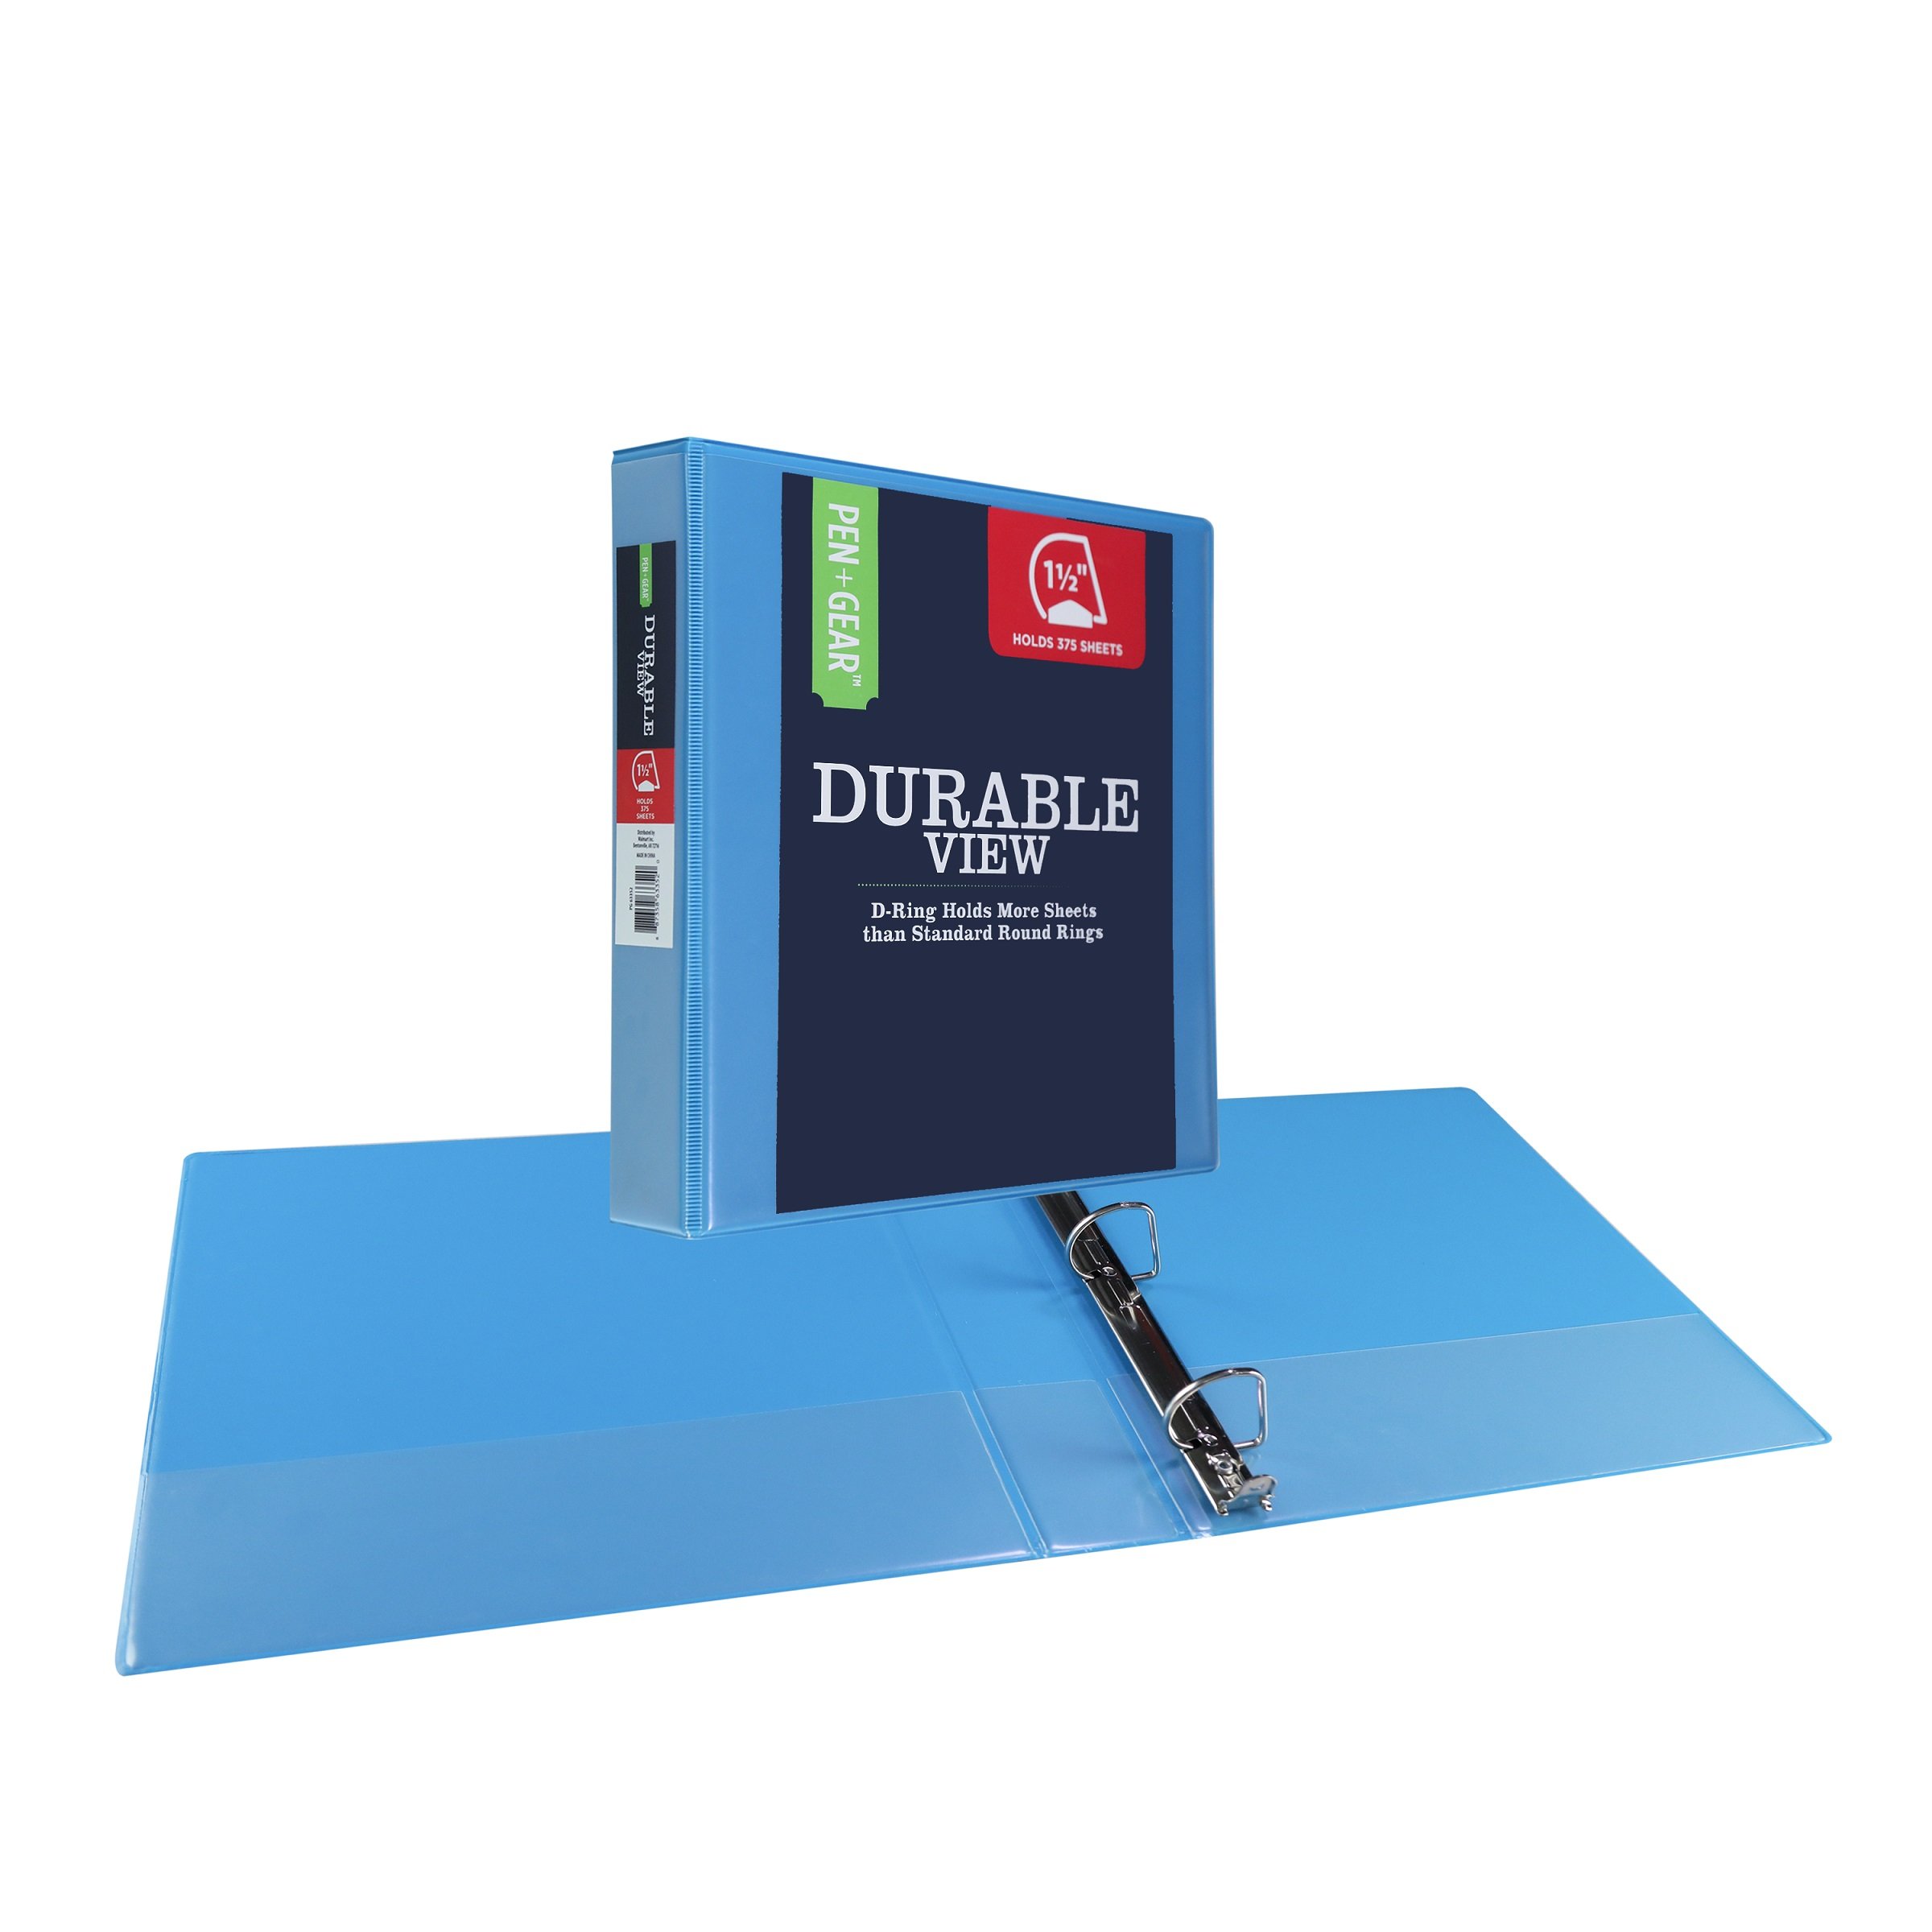 """Pen + Gear Durable View 1.5"""" 3-Ring Binder, 8.5"""" x 11\ by Wal-Mart Stores, Inc."""